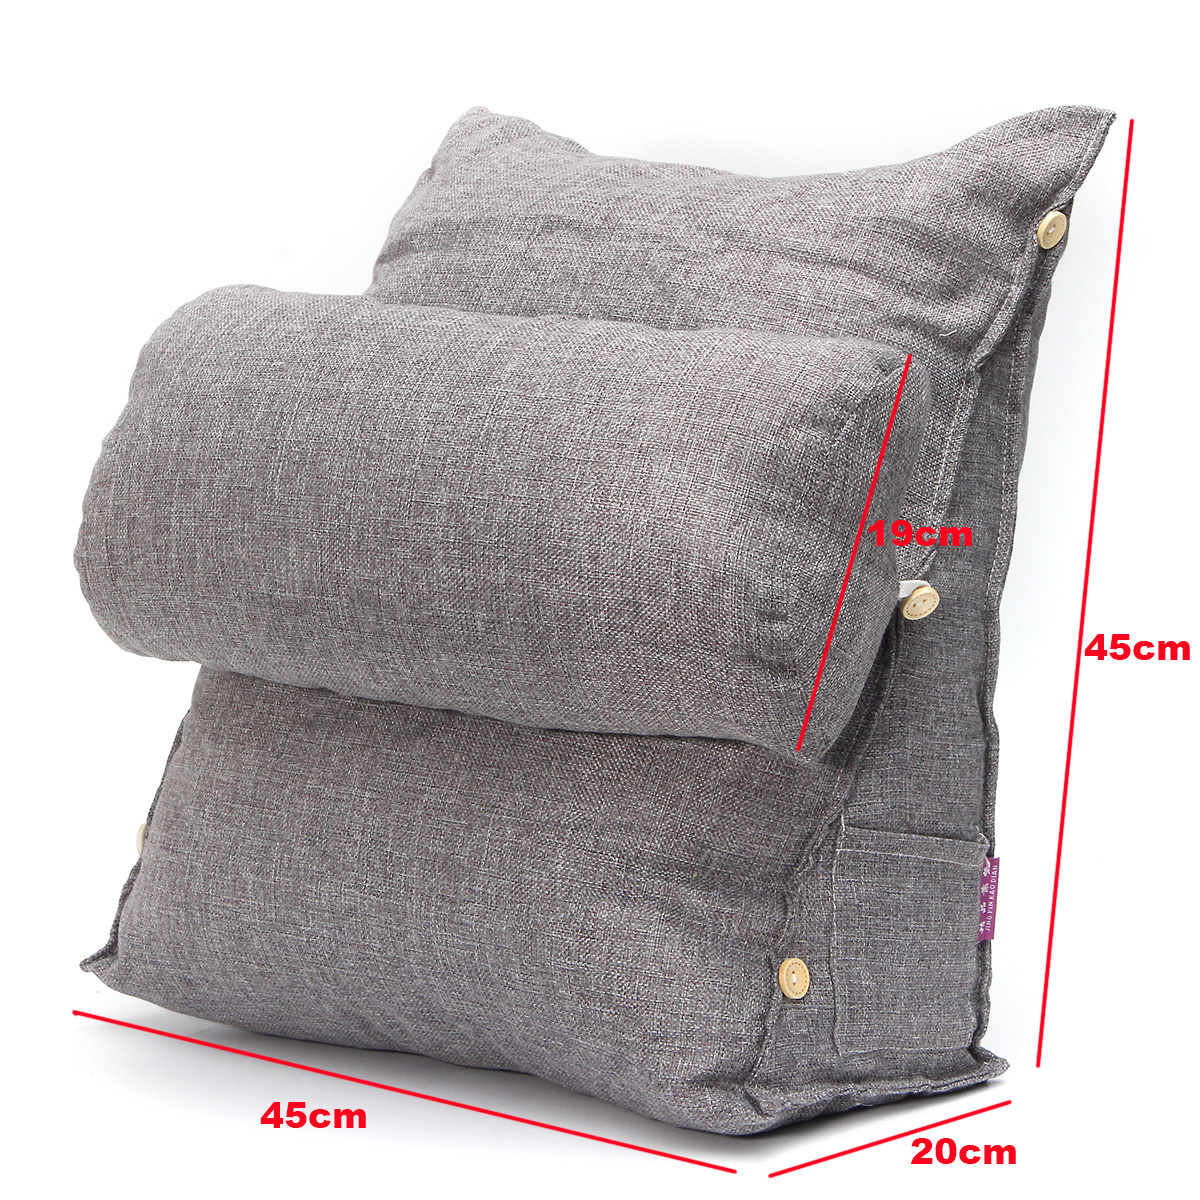 Bed Chair Pillow Adjustable Fip Pillow Sofa Bed Office Chair Rest Neck